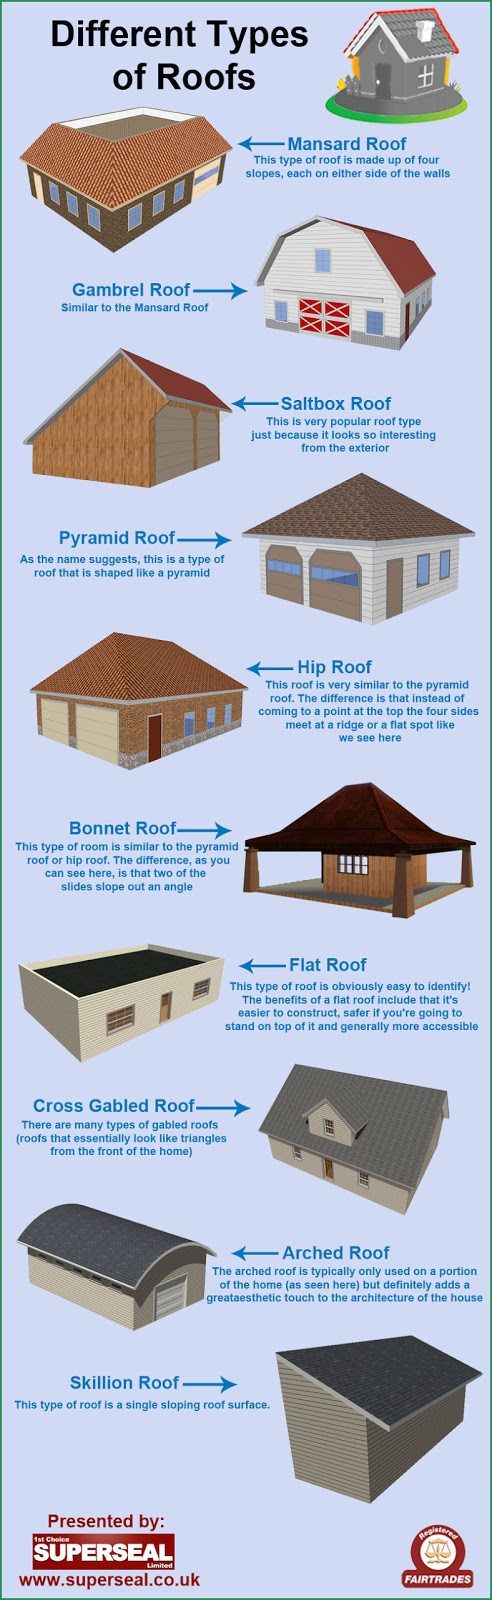 all seasons roofing in utah different types of roofs